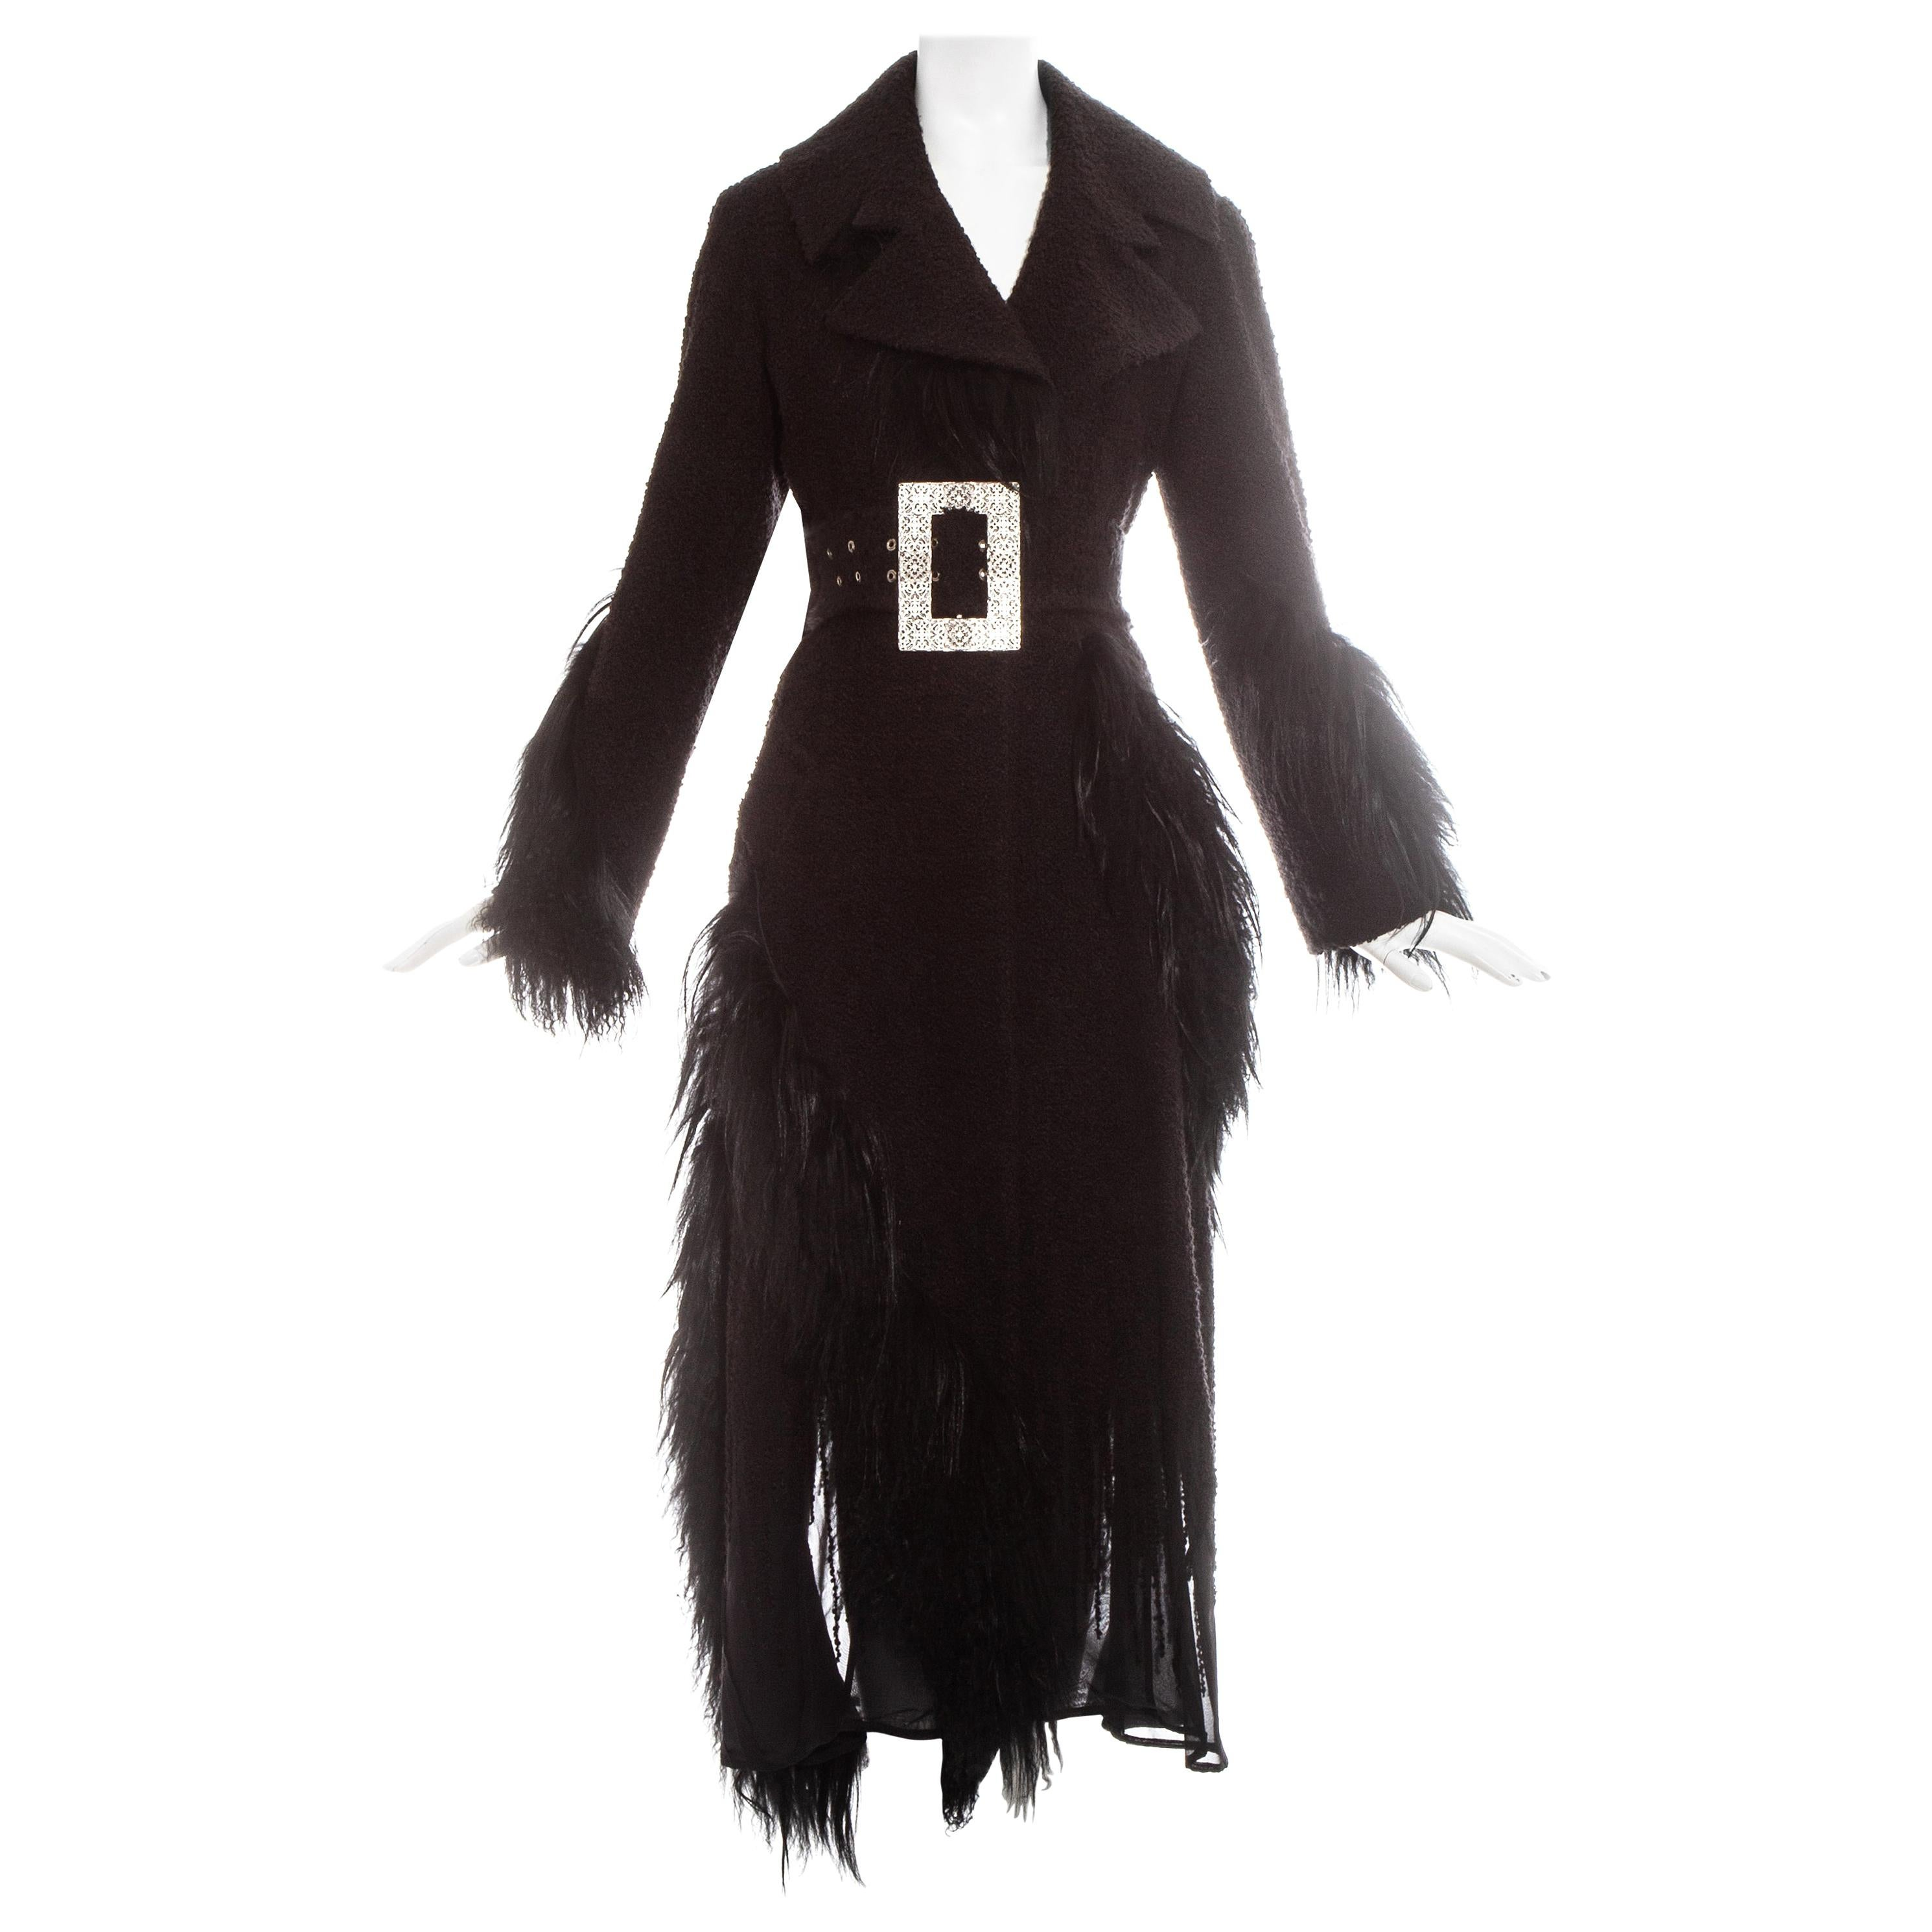 Christian Dior by John Galliano black boucle coat with yak and lamb, fw 2006